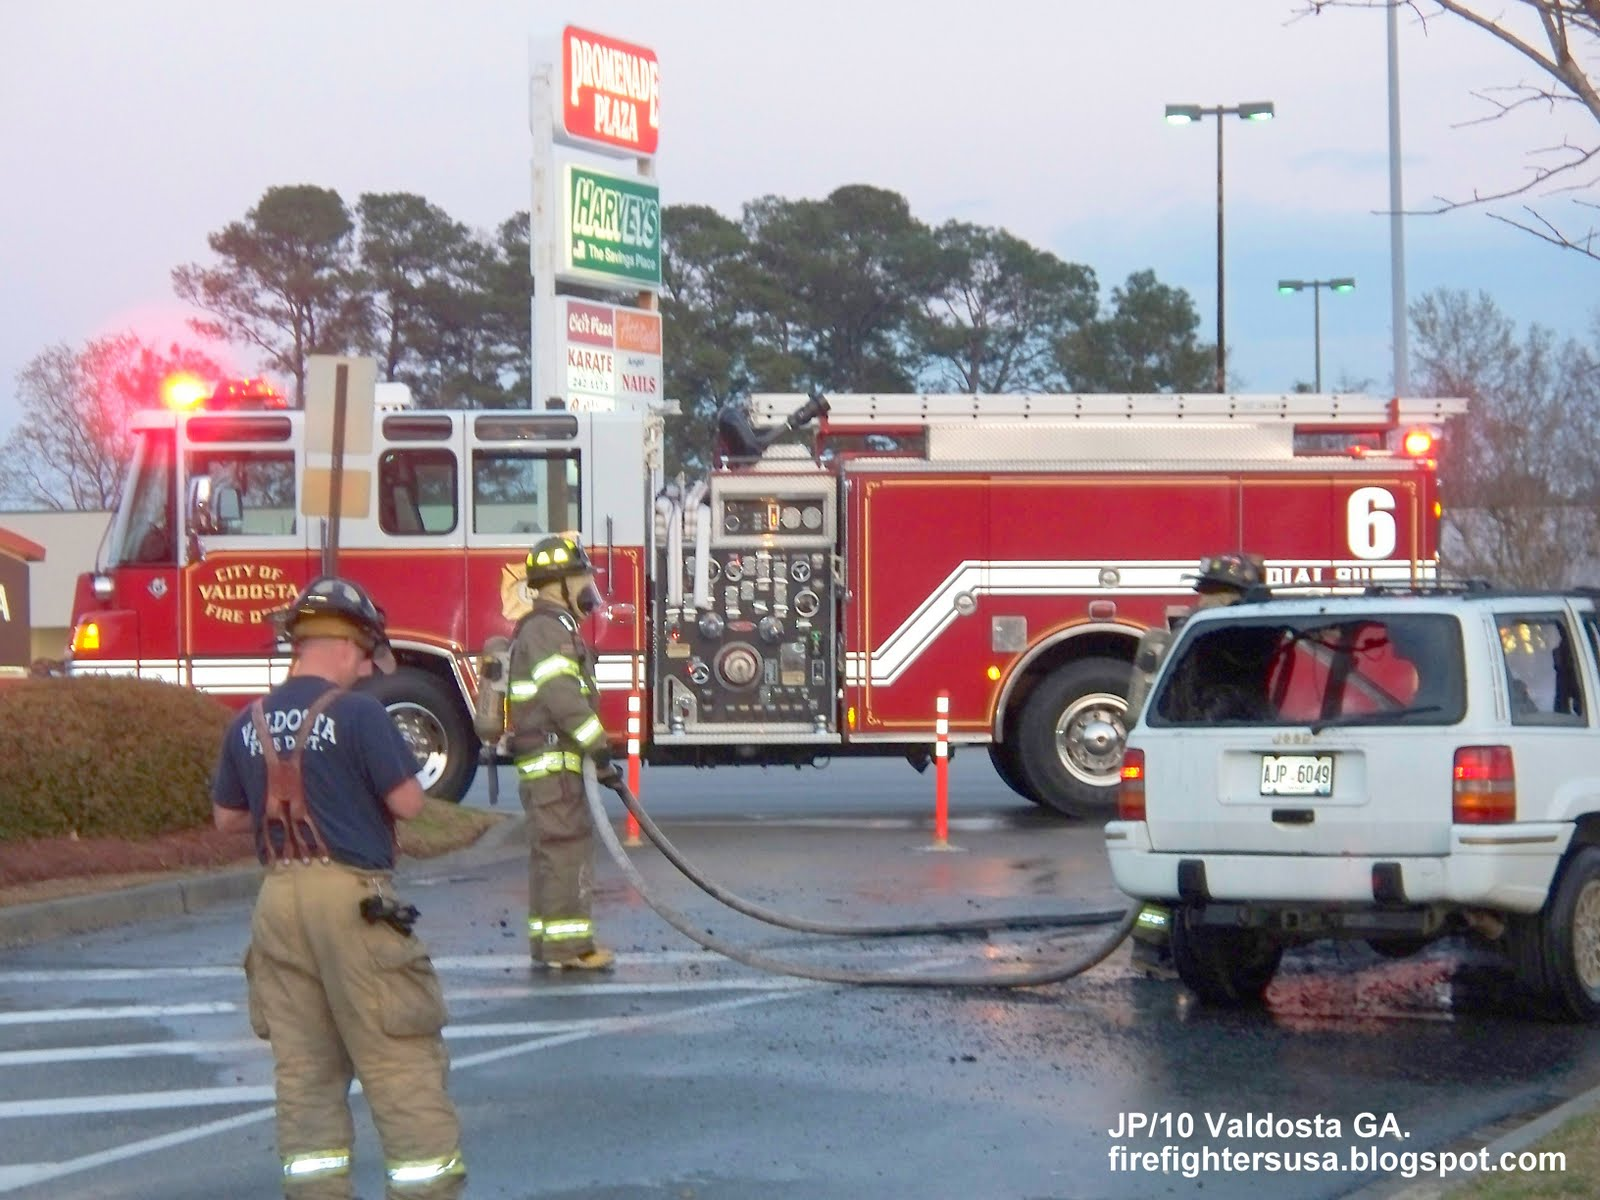 Georgia Fire Department truck Engine 6 on call, Valdosta Mall car fire